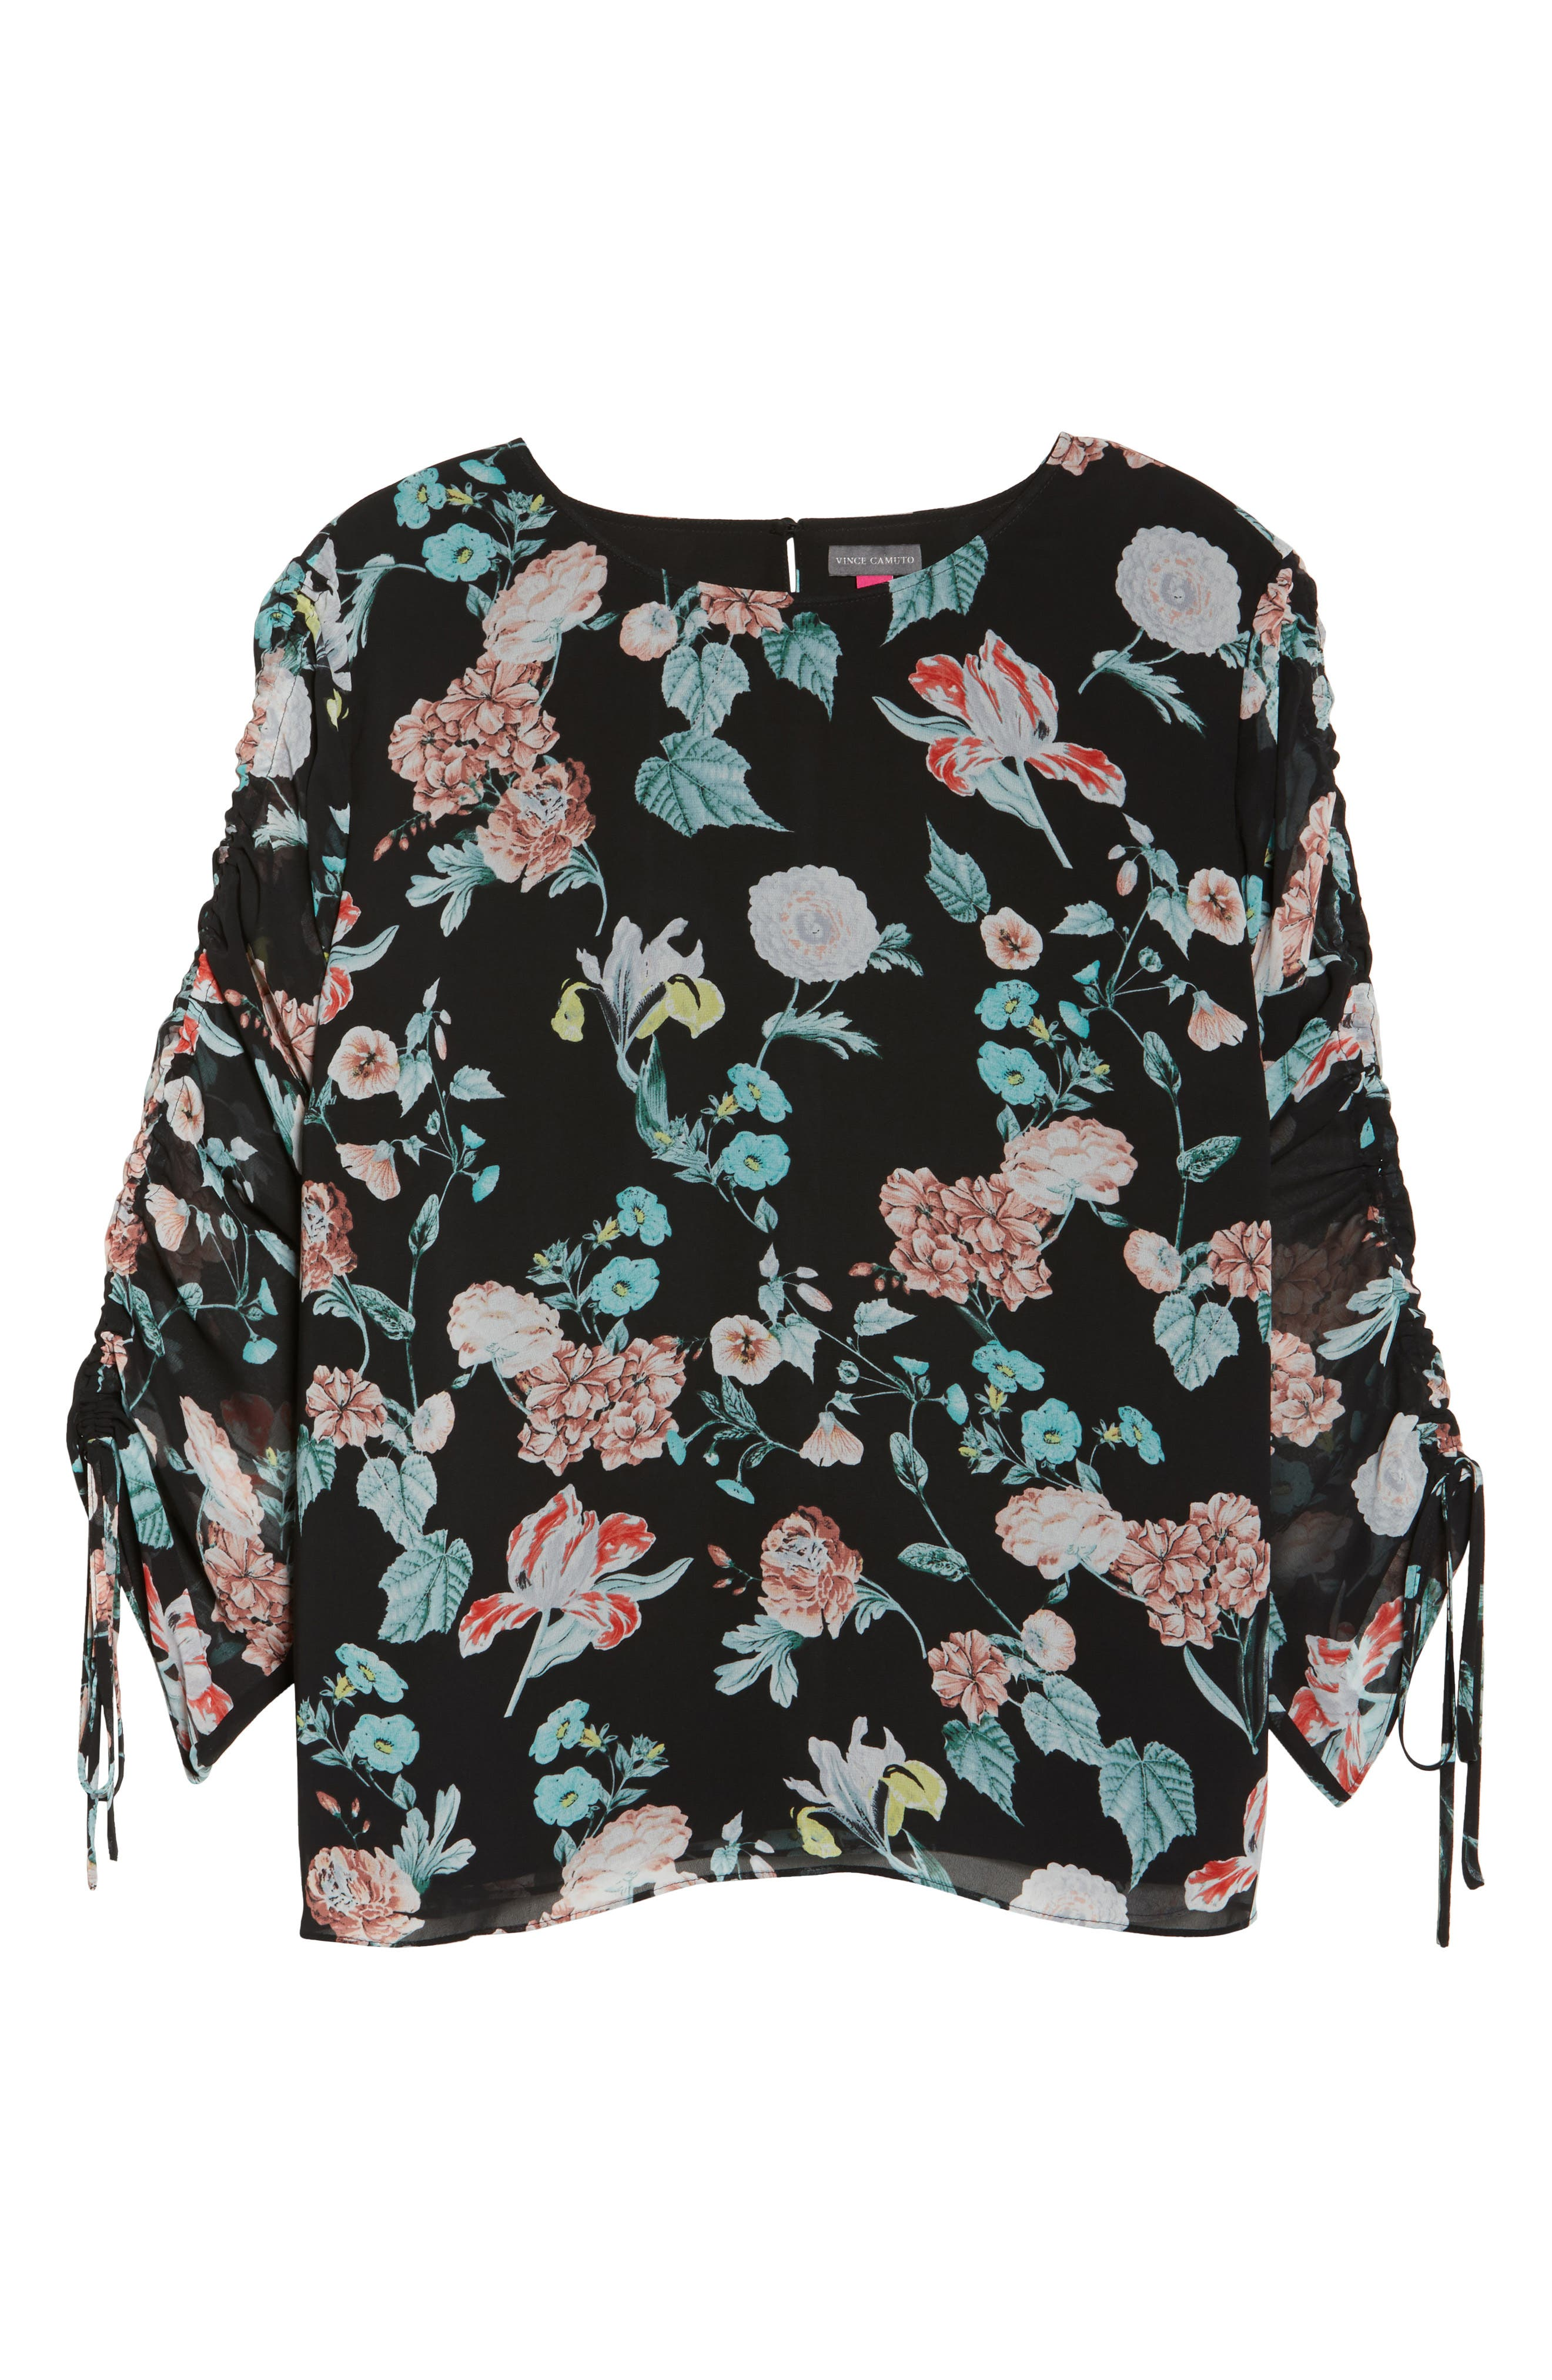 Floral Gardens Drawstring Sleeve Blouse,                             Alternate thumbnail 6, color,                             010